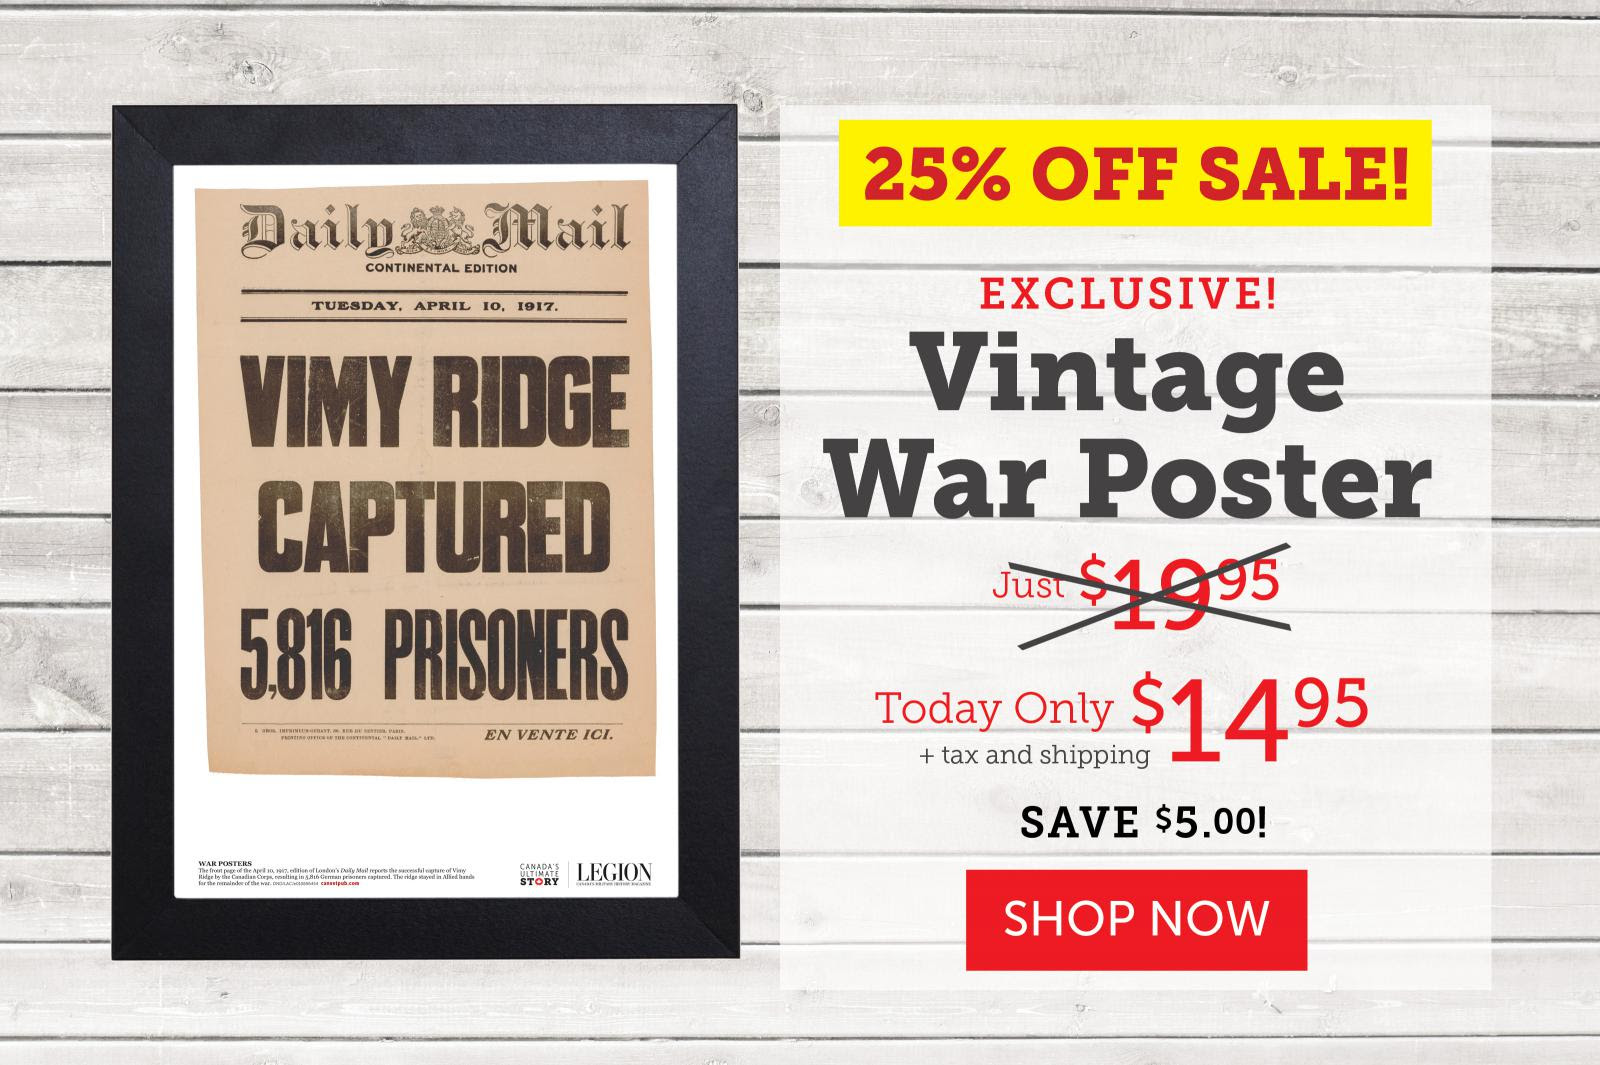 FLASH SALE! - 25% OFF - Vimy Ridge Captured Poster!